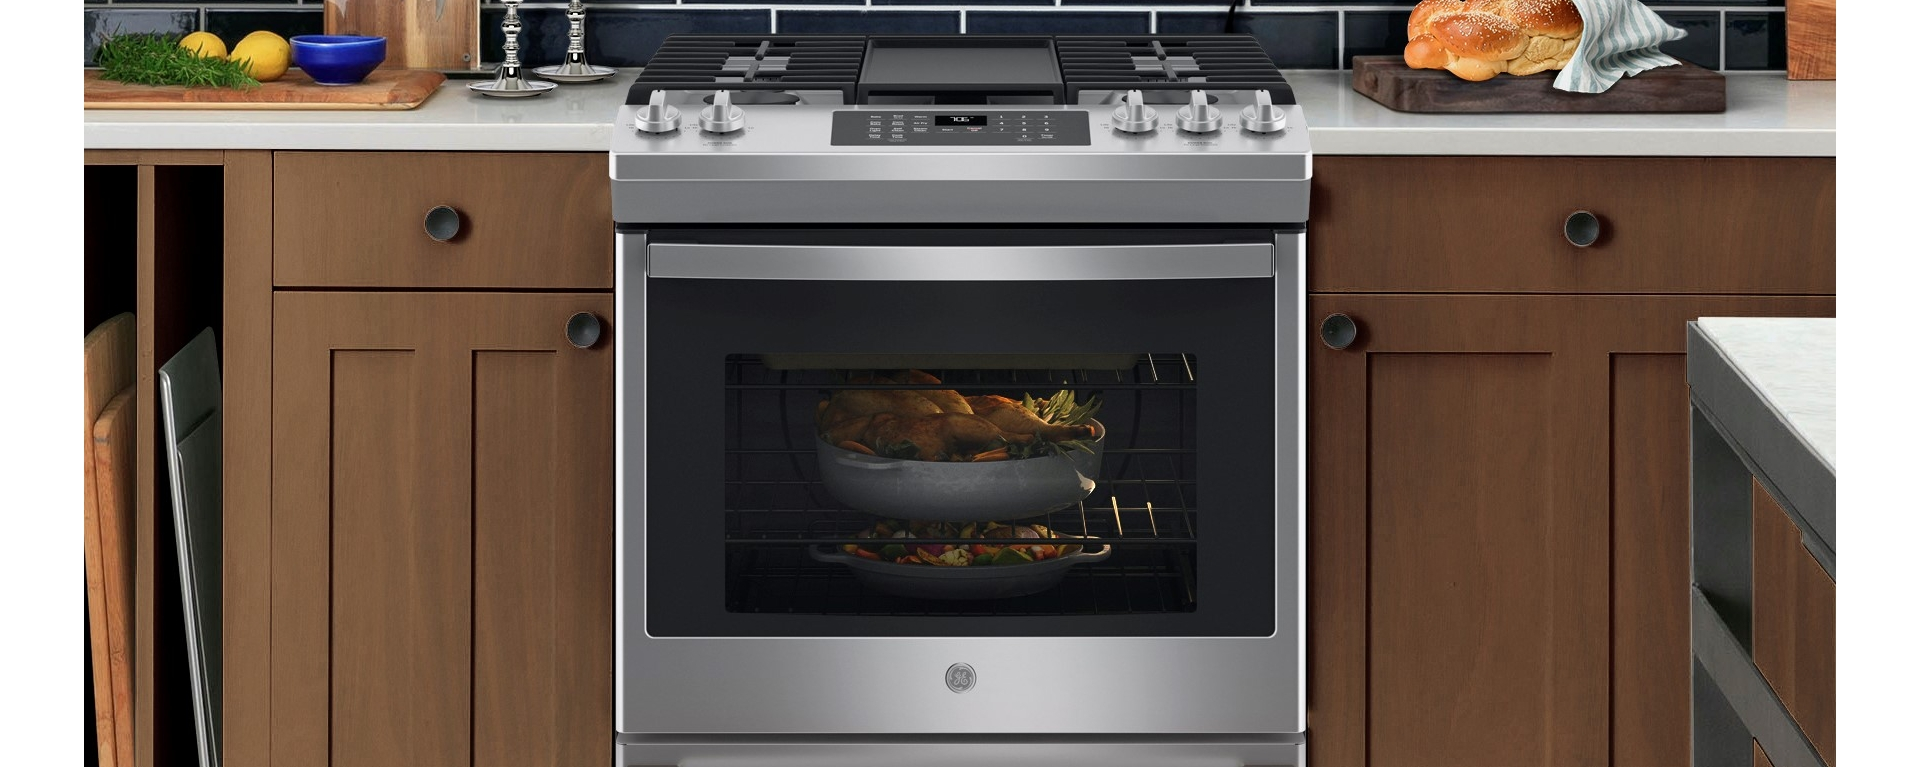 GE Appliances, in partnership with ZMAN Technologies, is now offering ovens and refrigerators that are 100 Kosher-certified when used in conjunction with the Shabbos Keeper.